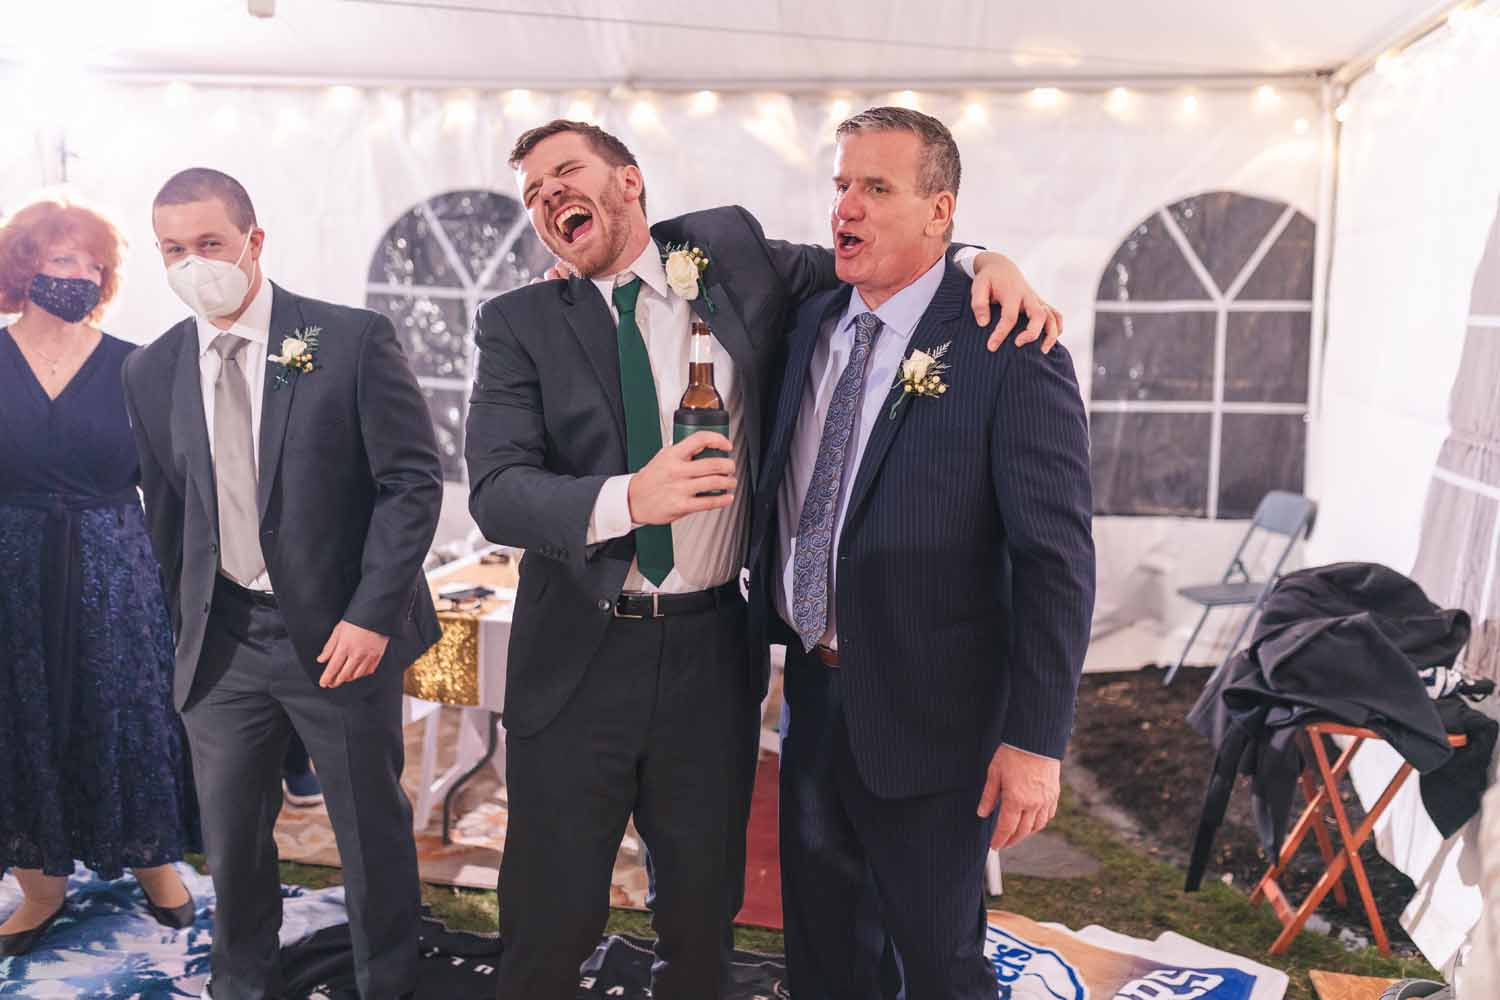 Groom using beer bottle as microphone during reception